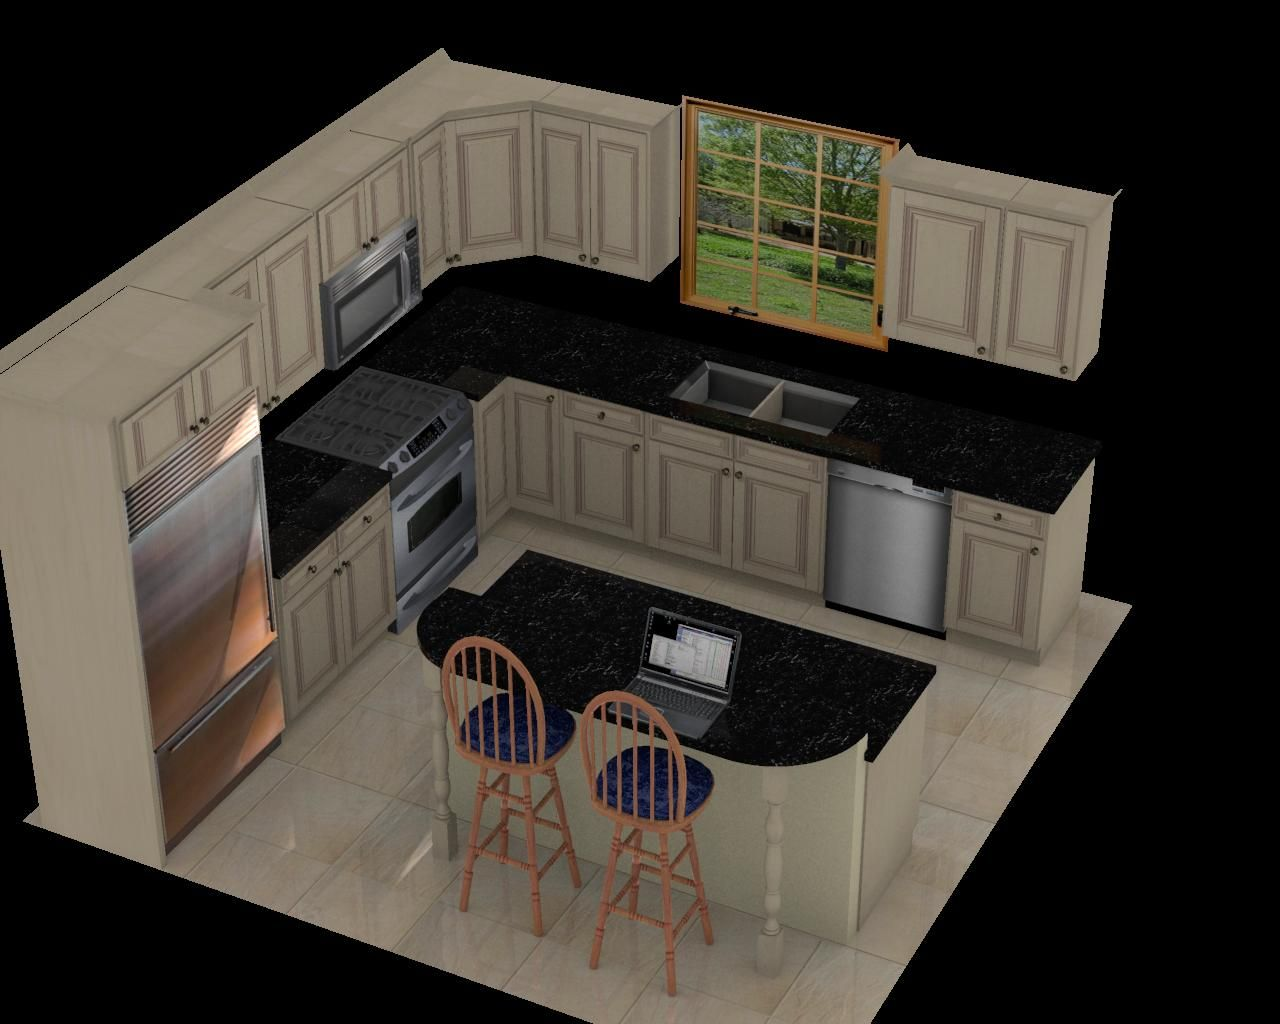 Luxury 12x12 kitchen layout with island 51 for with 12x12 for 15 x 9 kitchen layouts